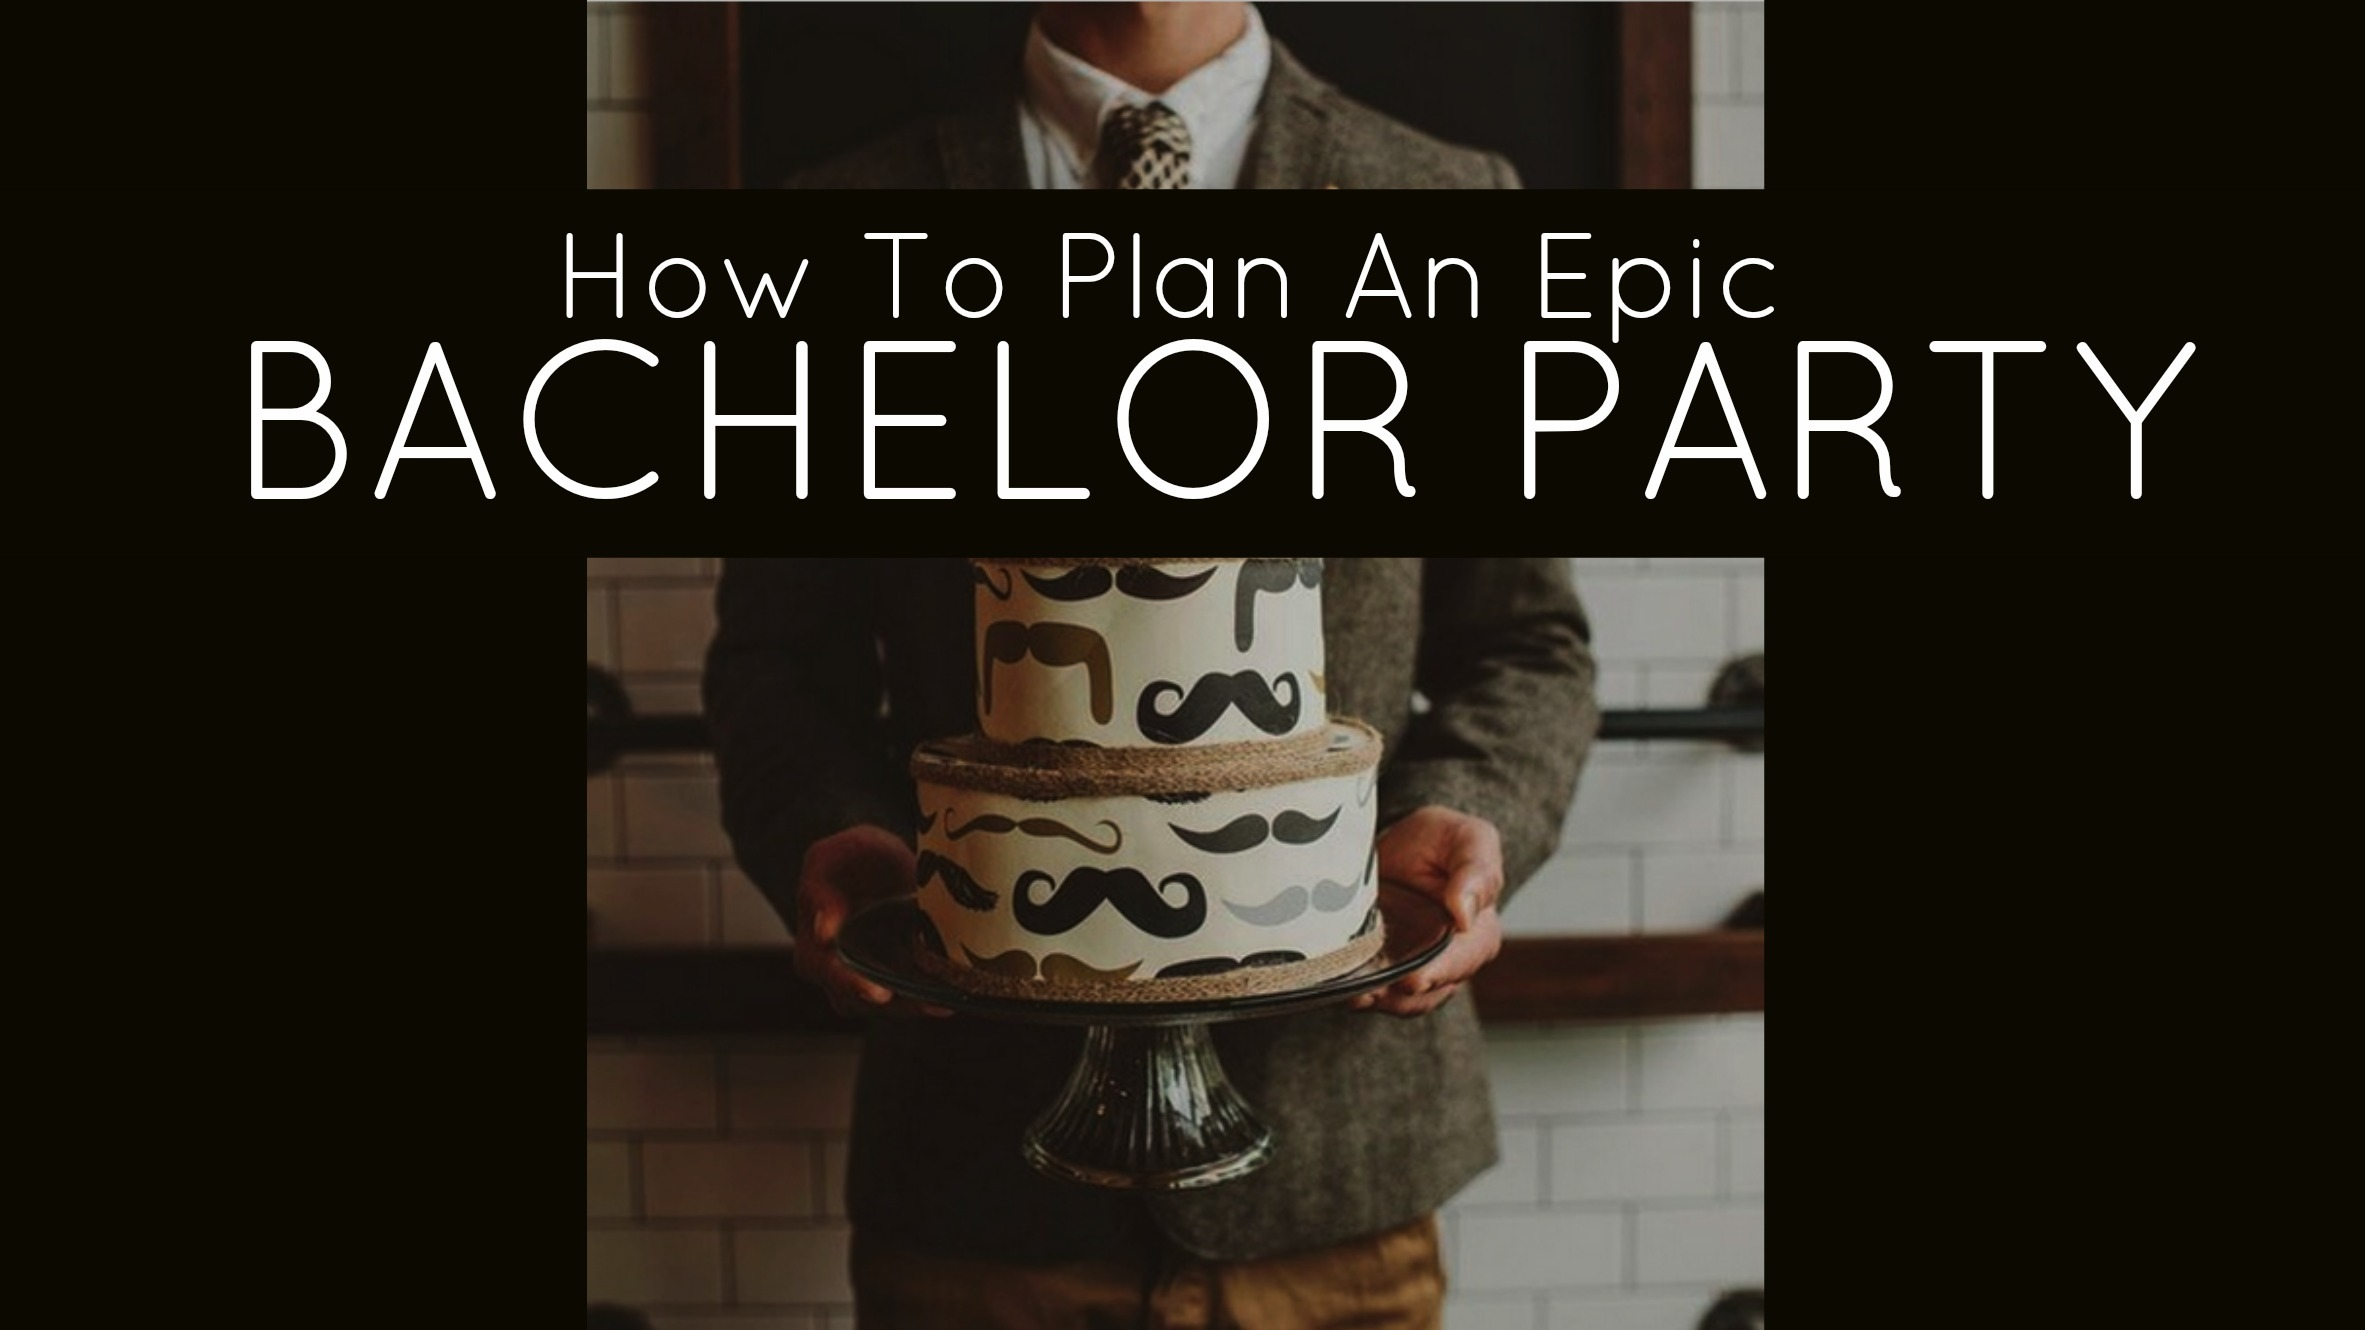 bachelor party ideas - how to plan a bachelor party - tailored fit